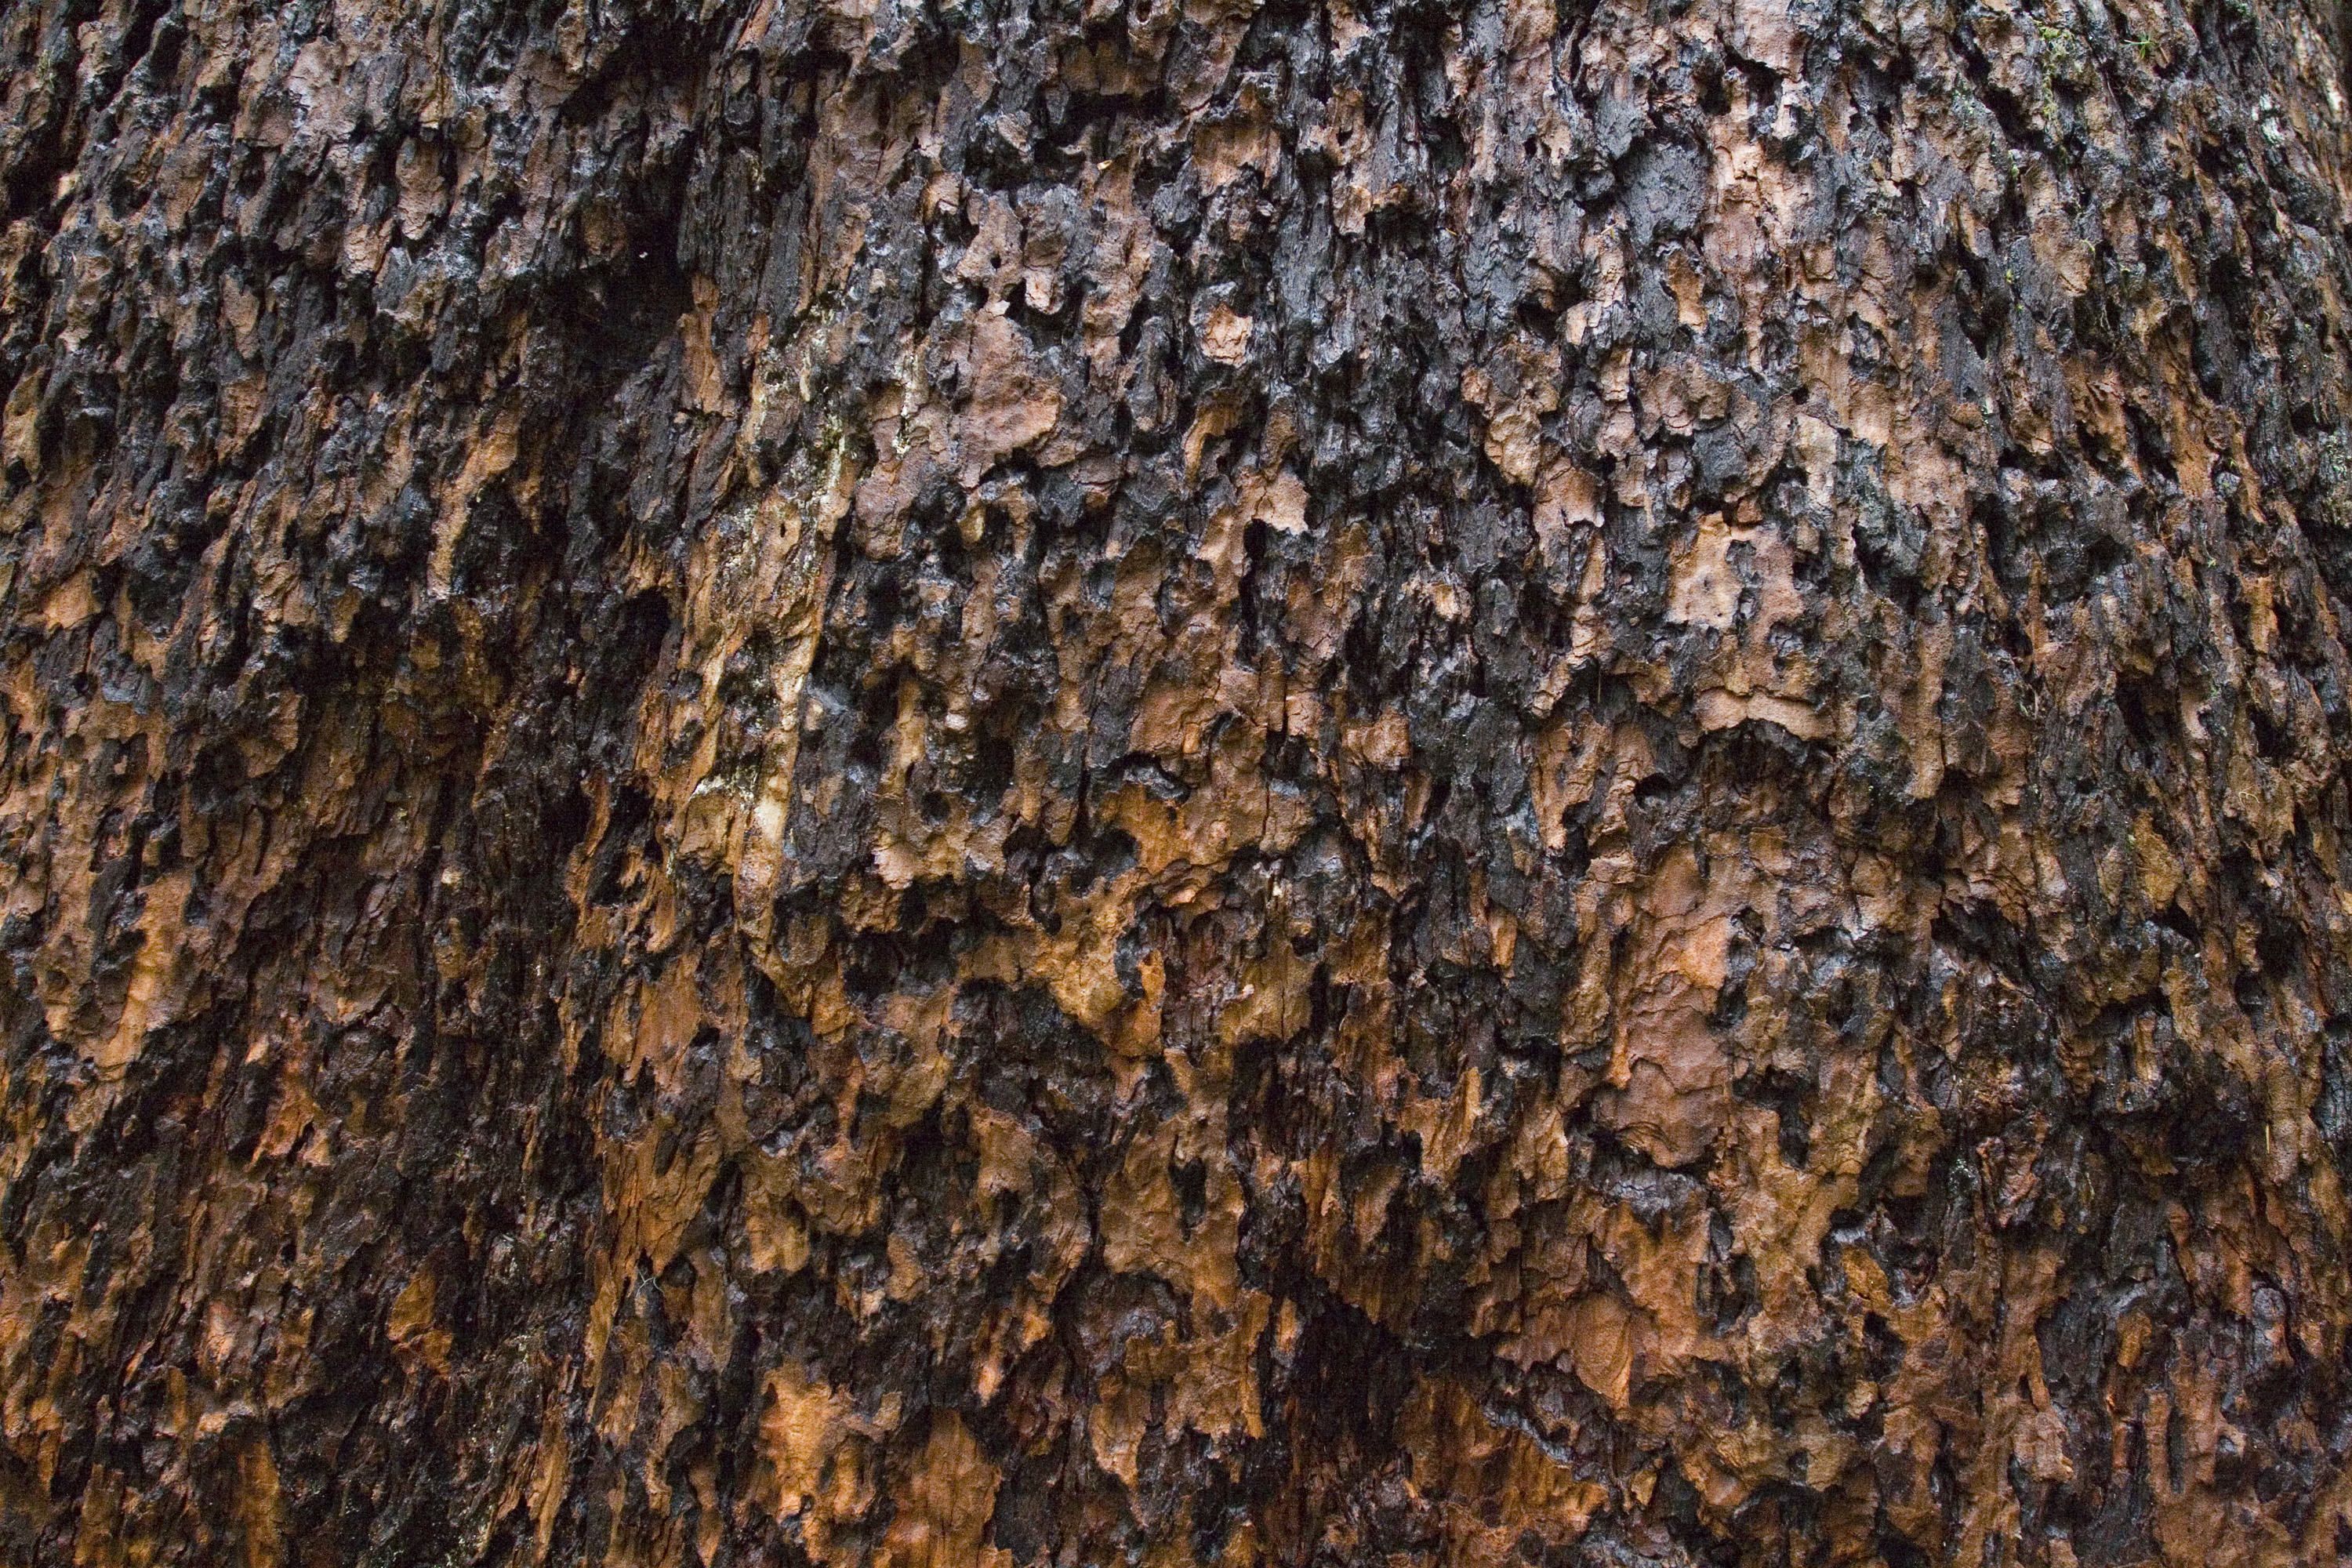 Flaky bark of an old growth Douglas-fir tree